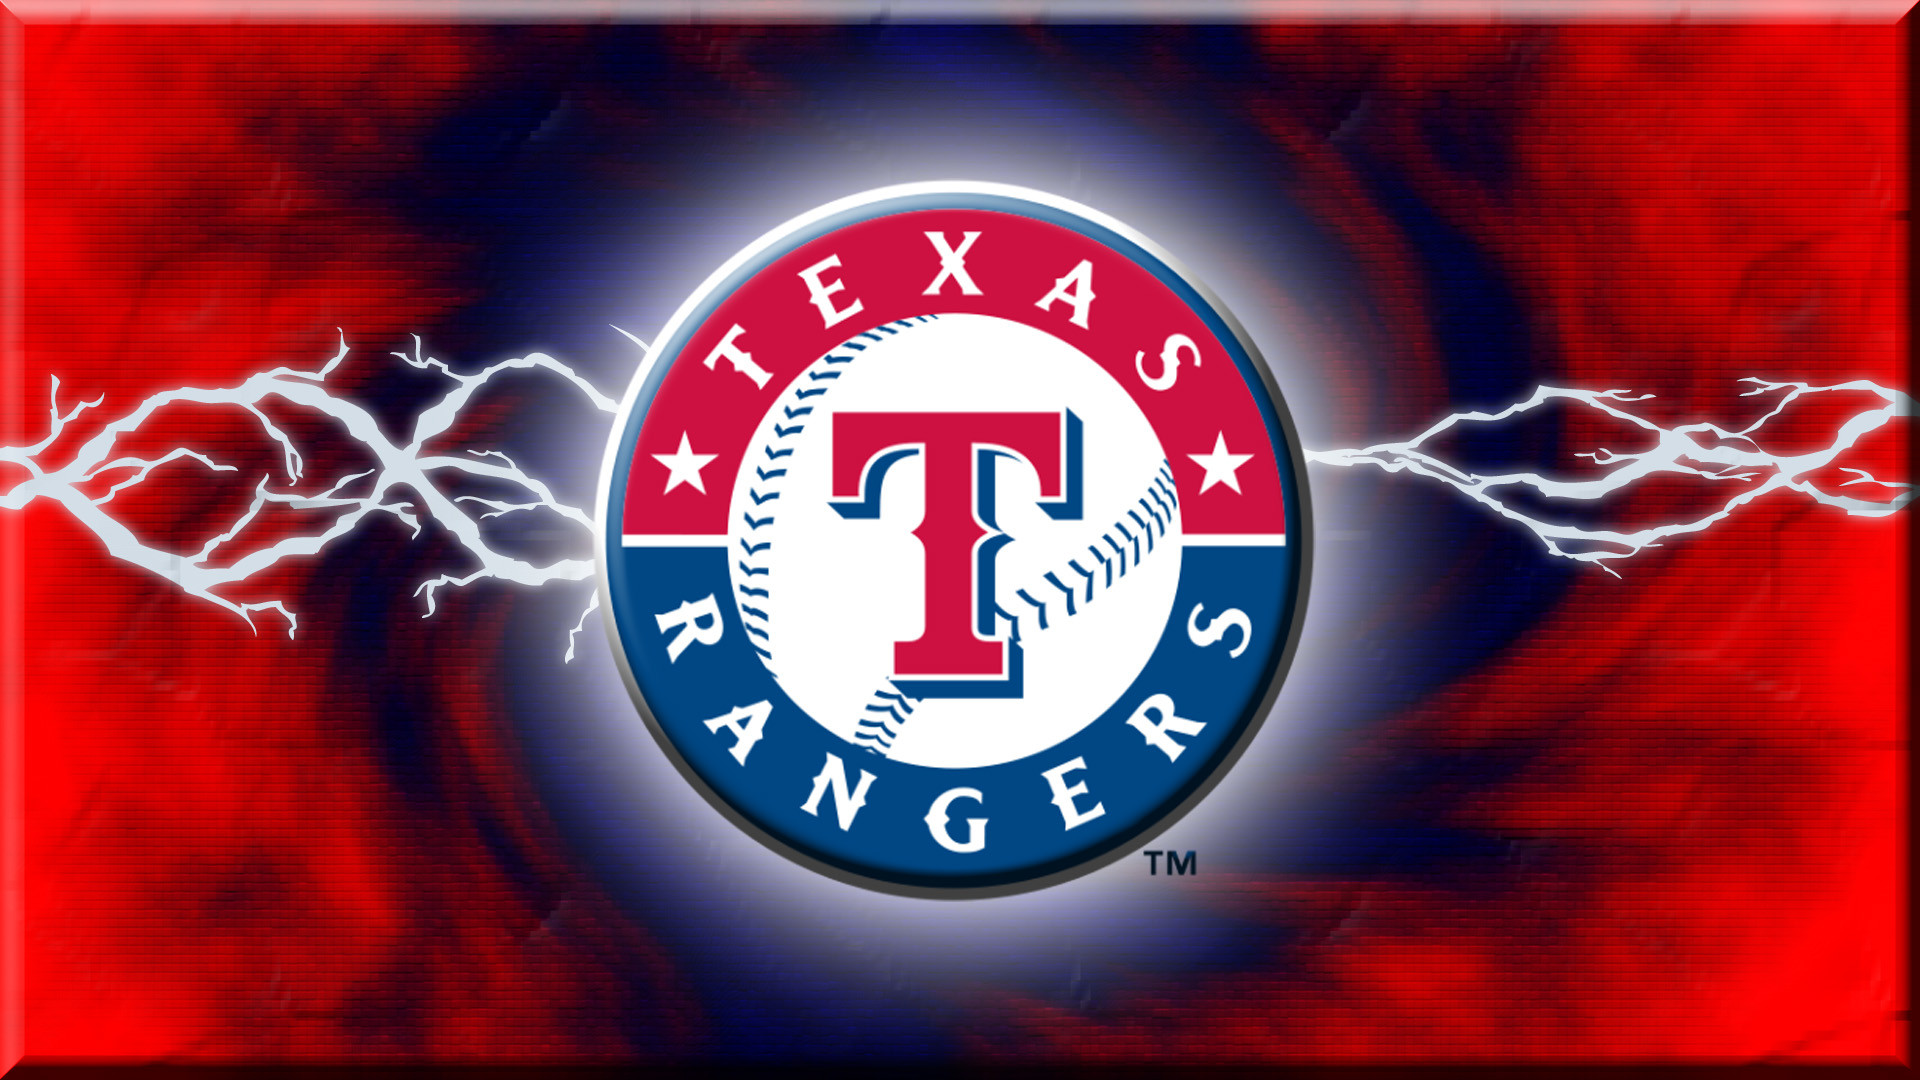 1920x1080 Download Texas Rangers wallpapers to your cell phone america | HD Wallpapers  | Pinterest | Wallpaper and Wallpaper backgrounds